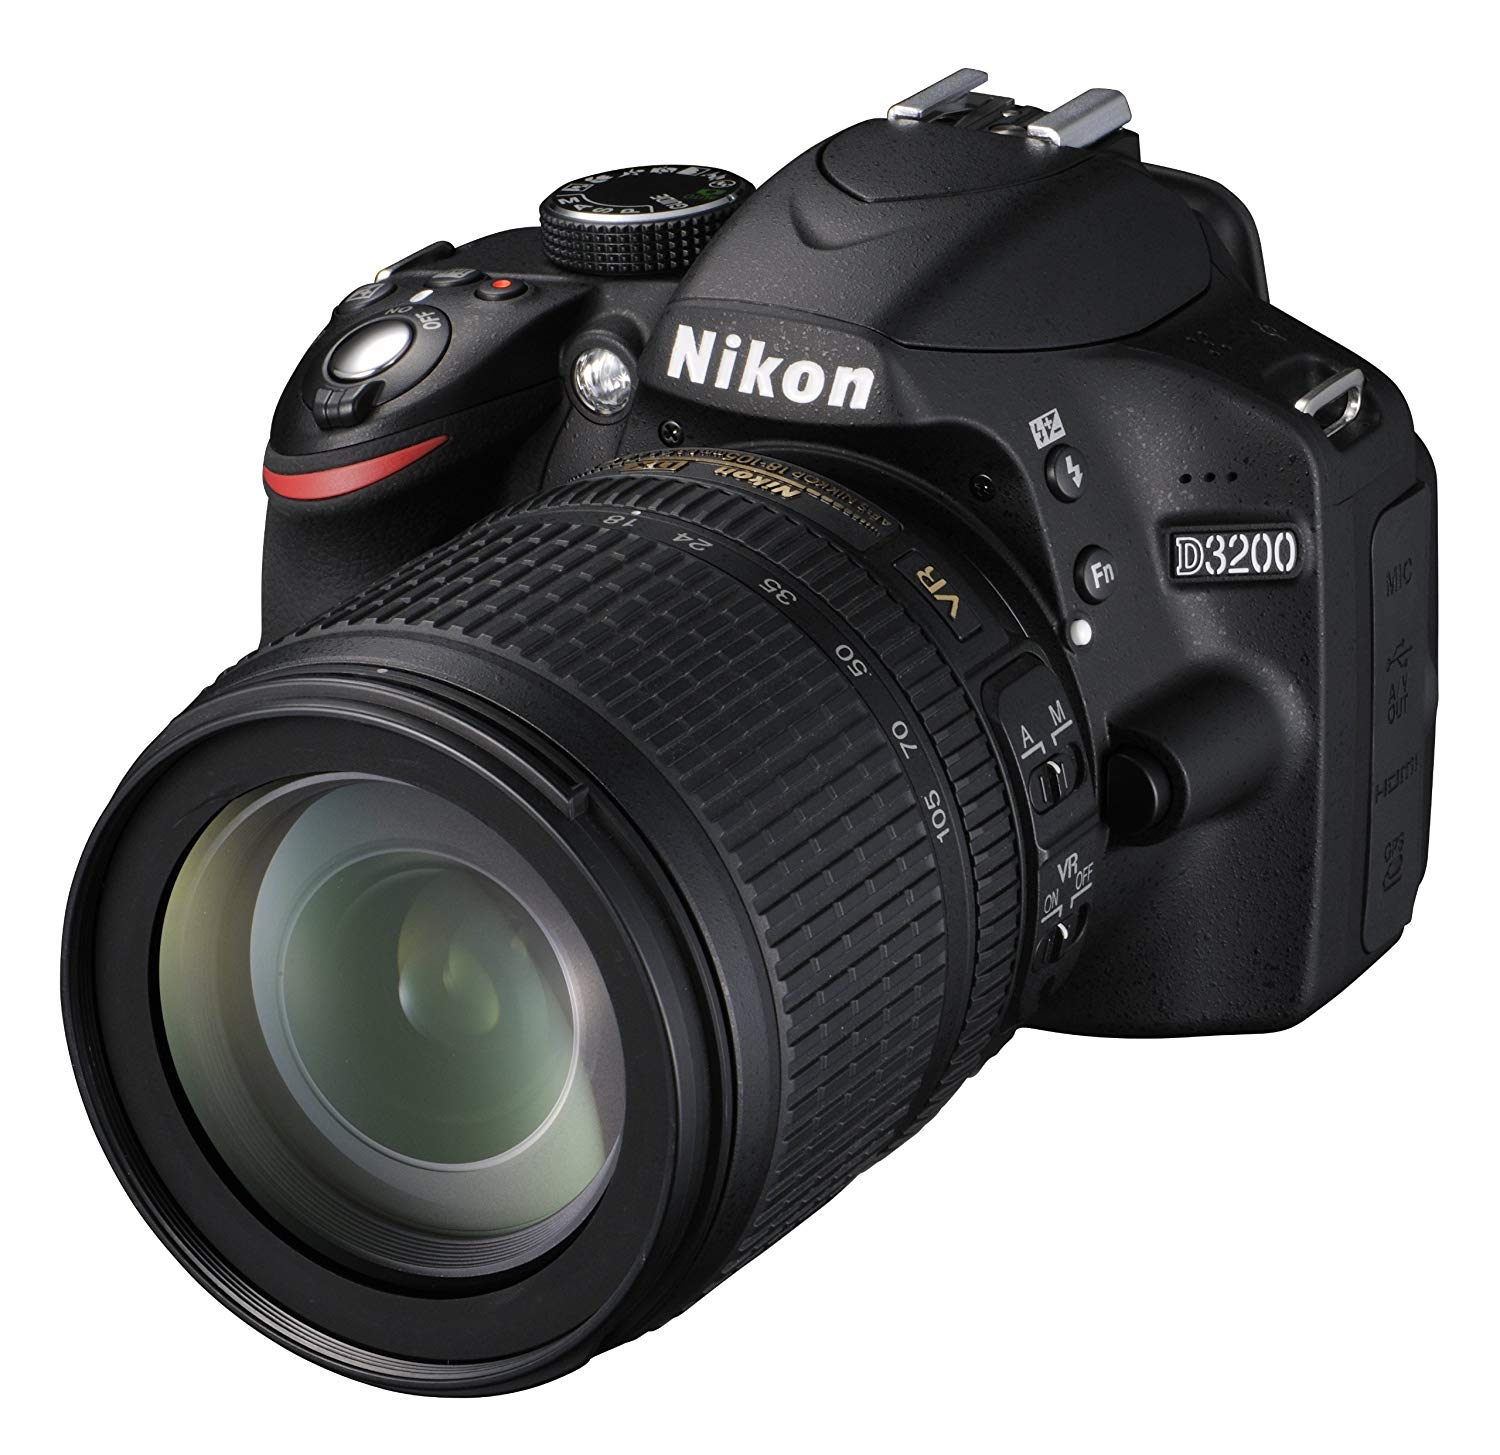 "Nikon D3200 - Cámara réflex digital de 24 Mp (pantalla 2.9"", estabilizador, vídeo Full HD), color negro - kit con objetivo AF-S DX 18-105mm f/5.6 VR"